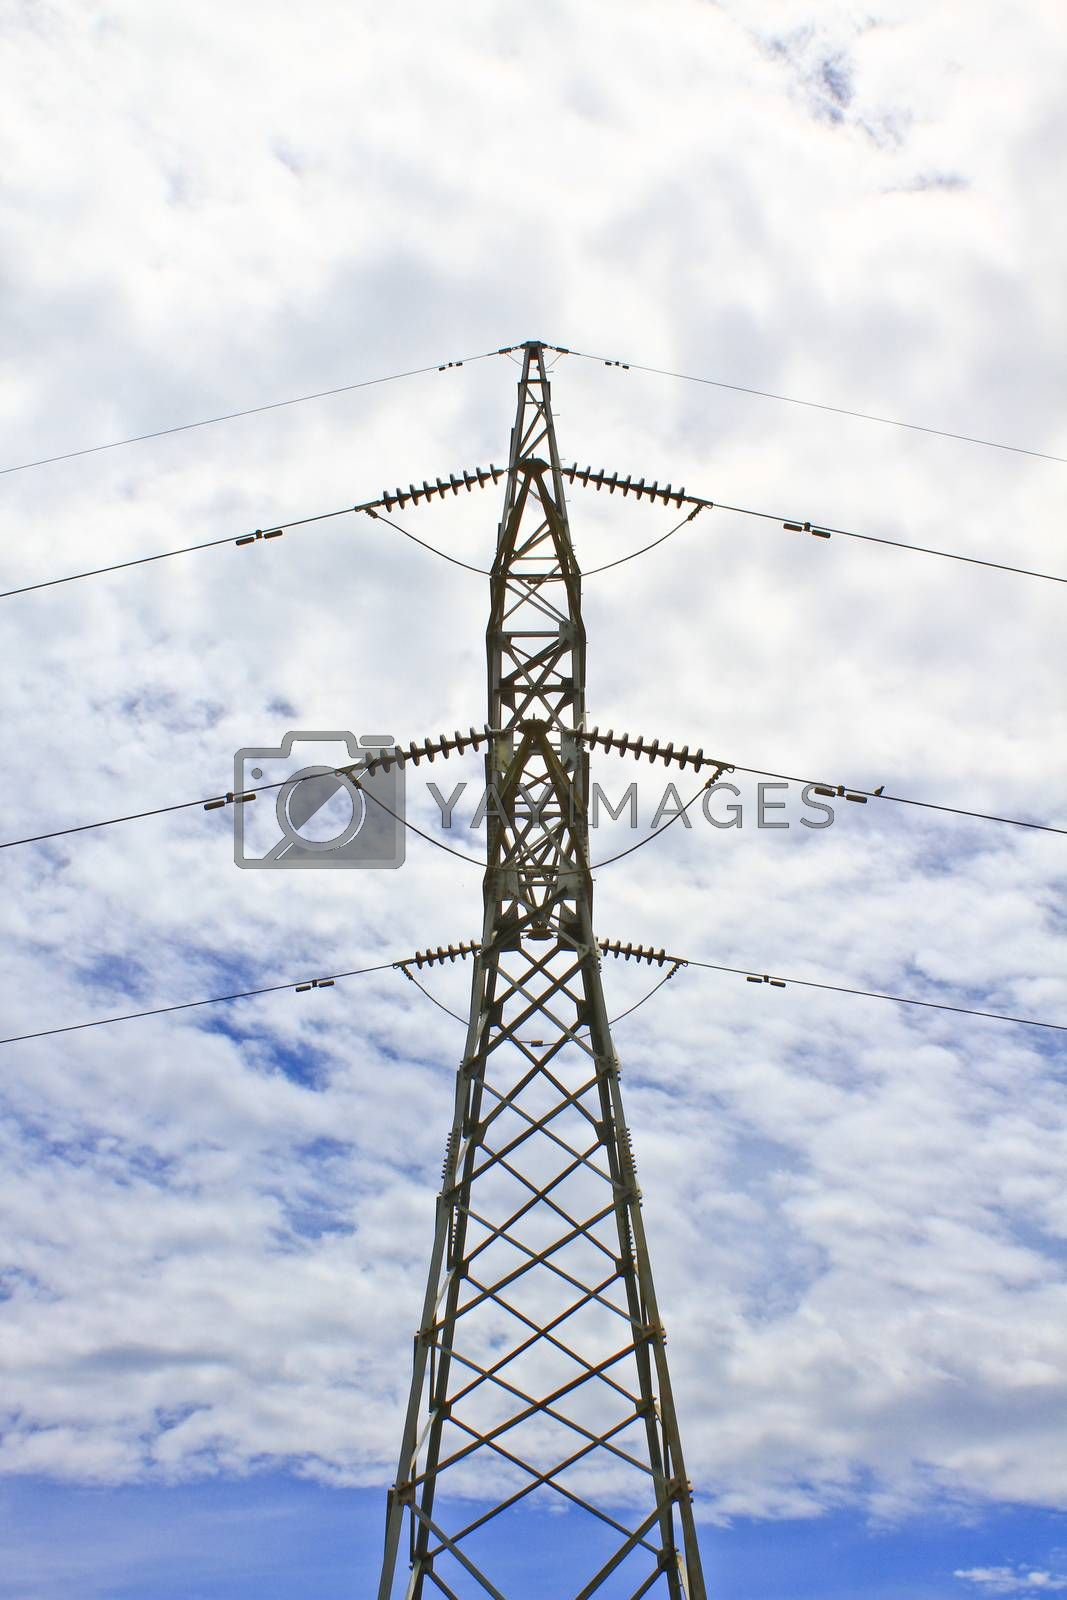 Royalty free image of High voltage tower by forest71